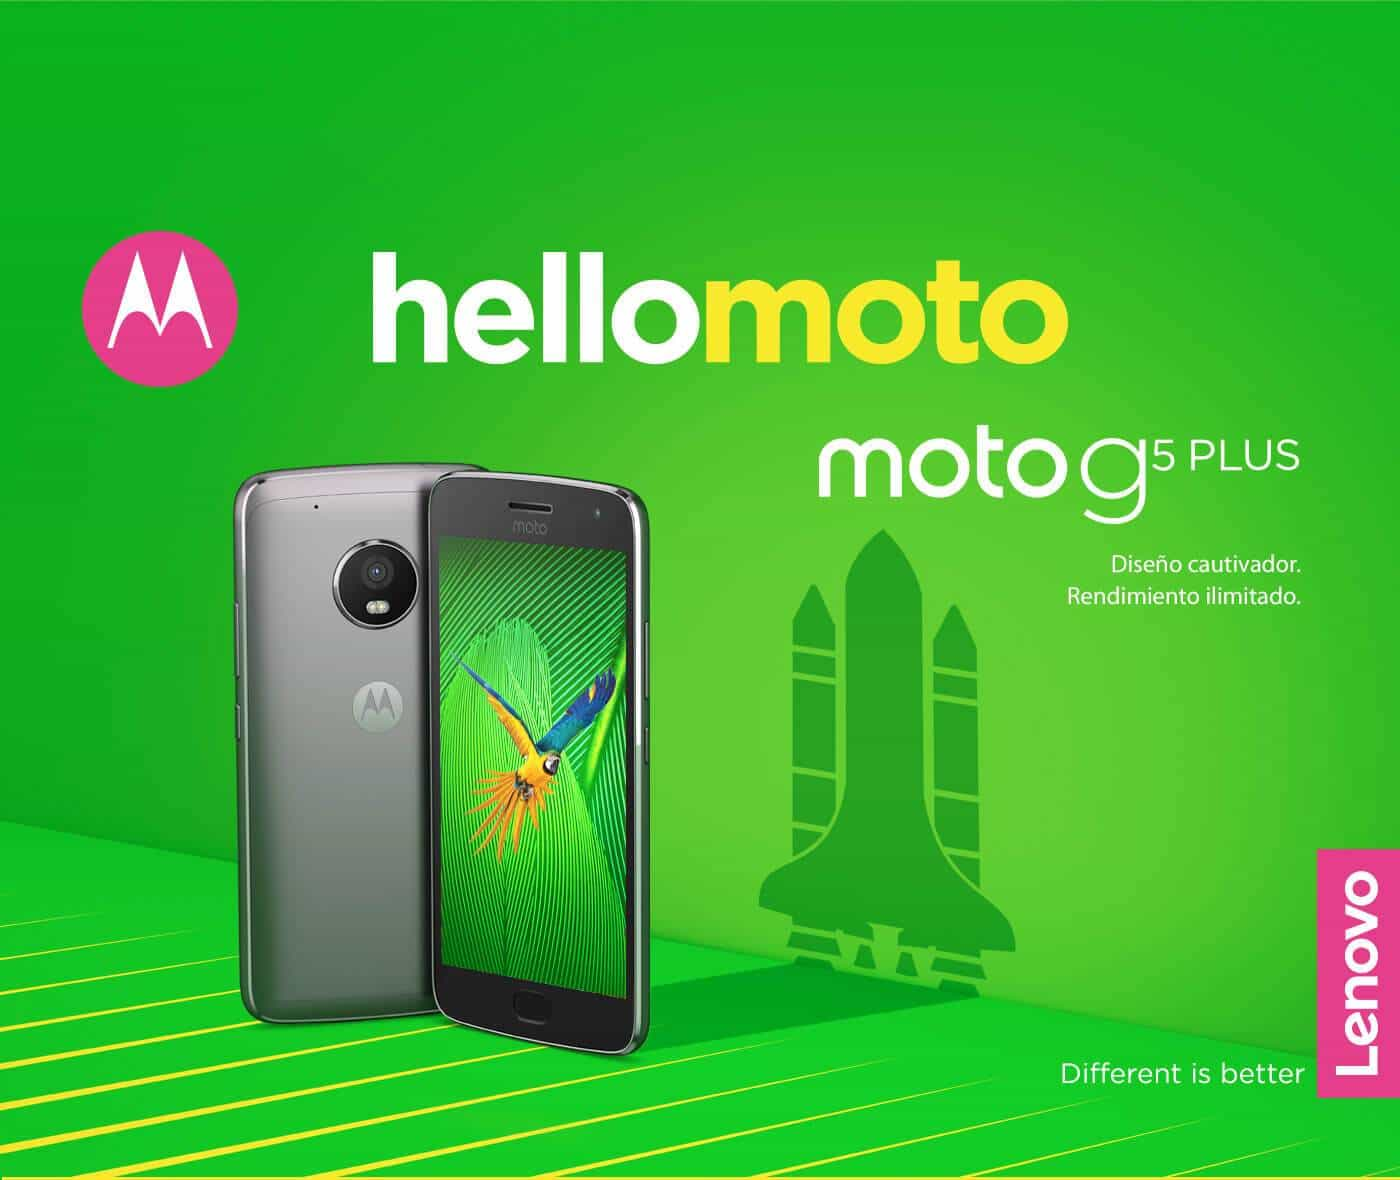 Official Ads for the Moto G5 and G5 Plus Leaked